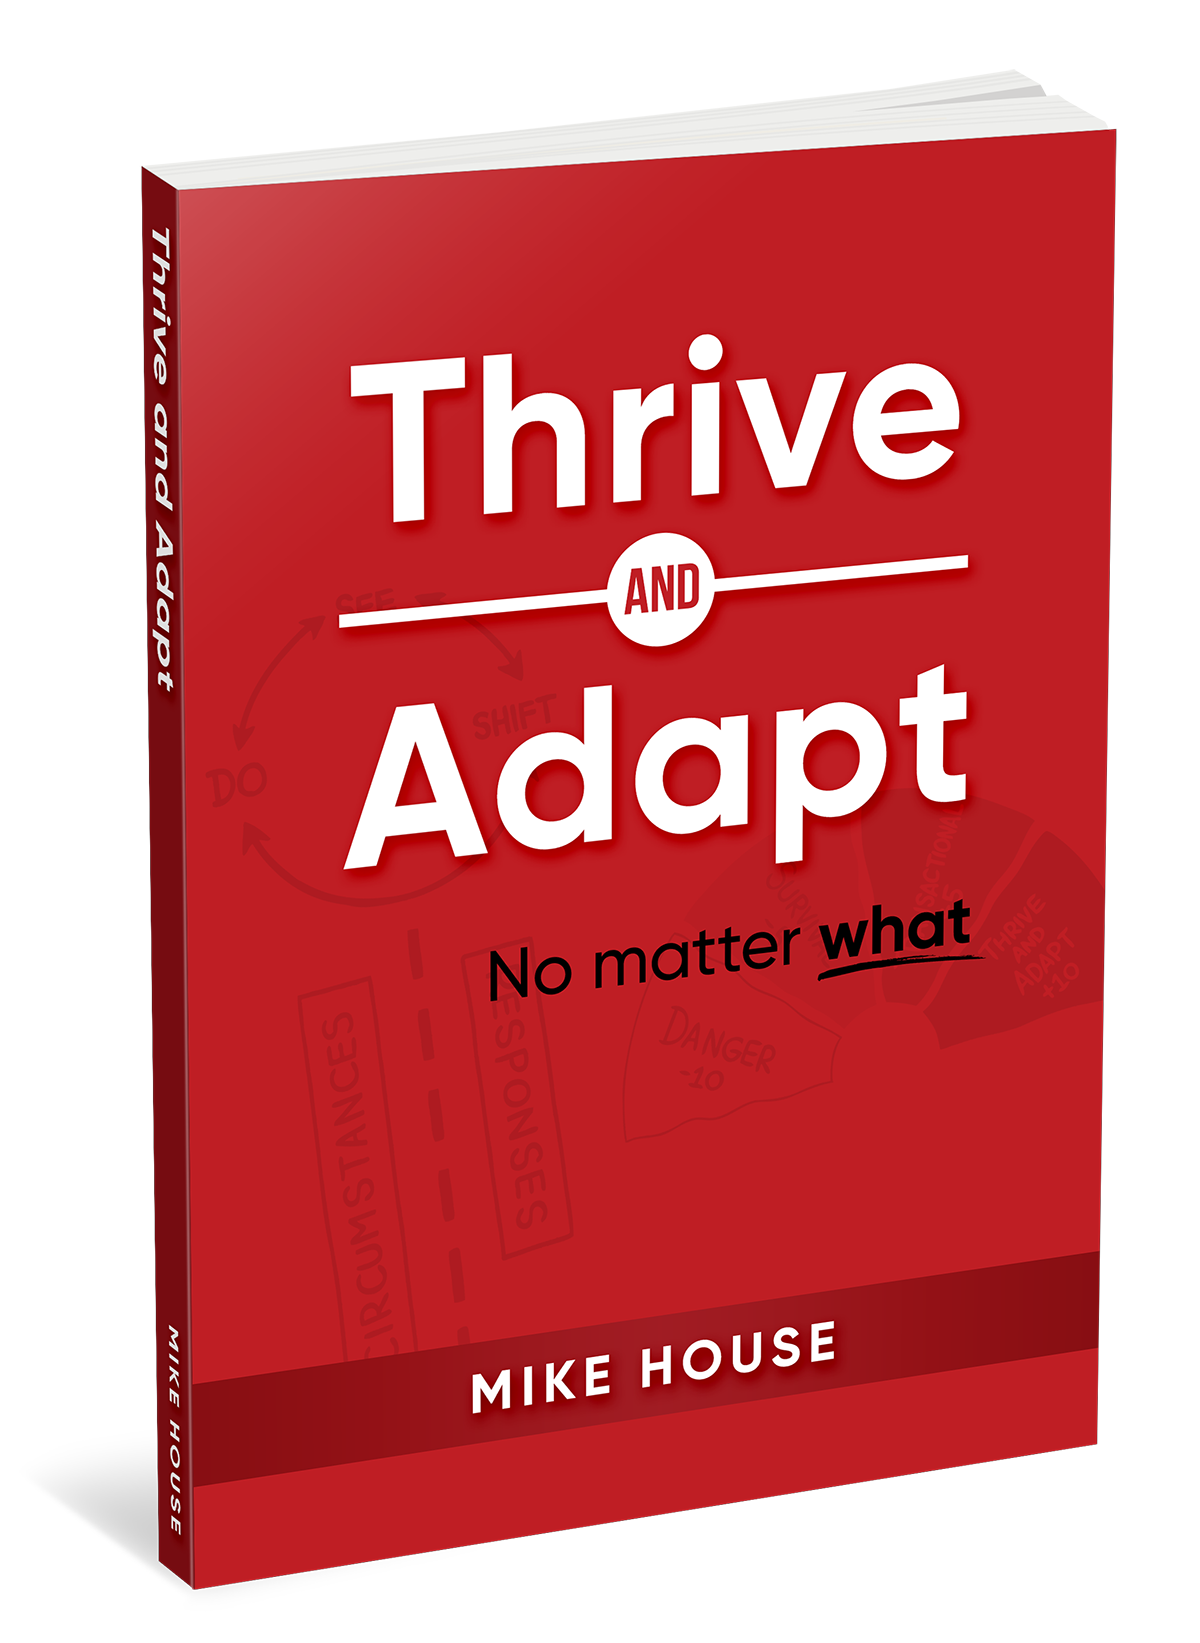 Mike's book has now been published. -